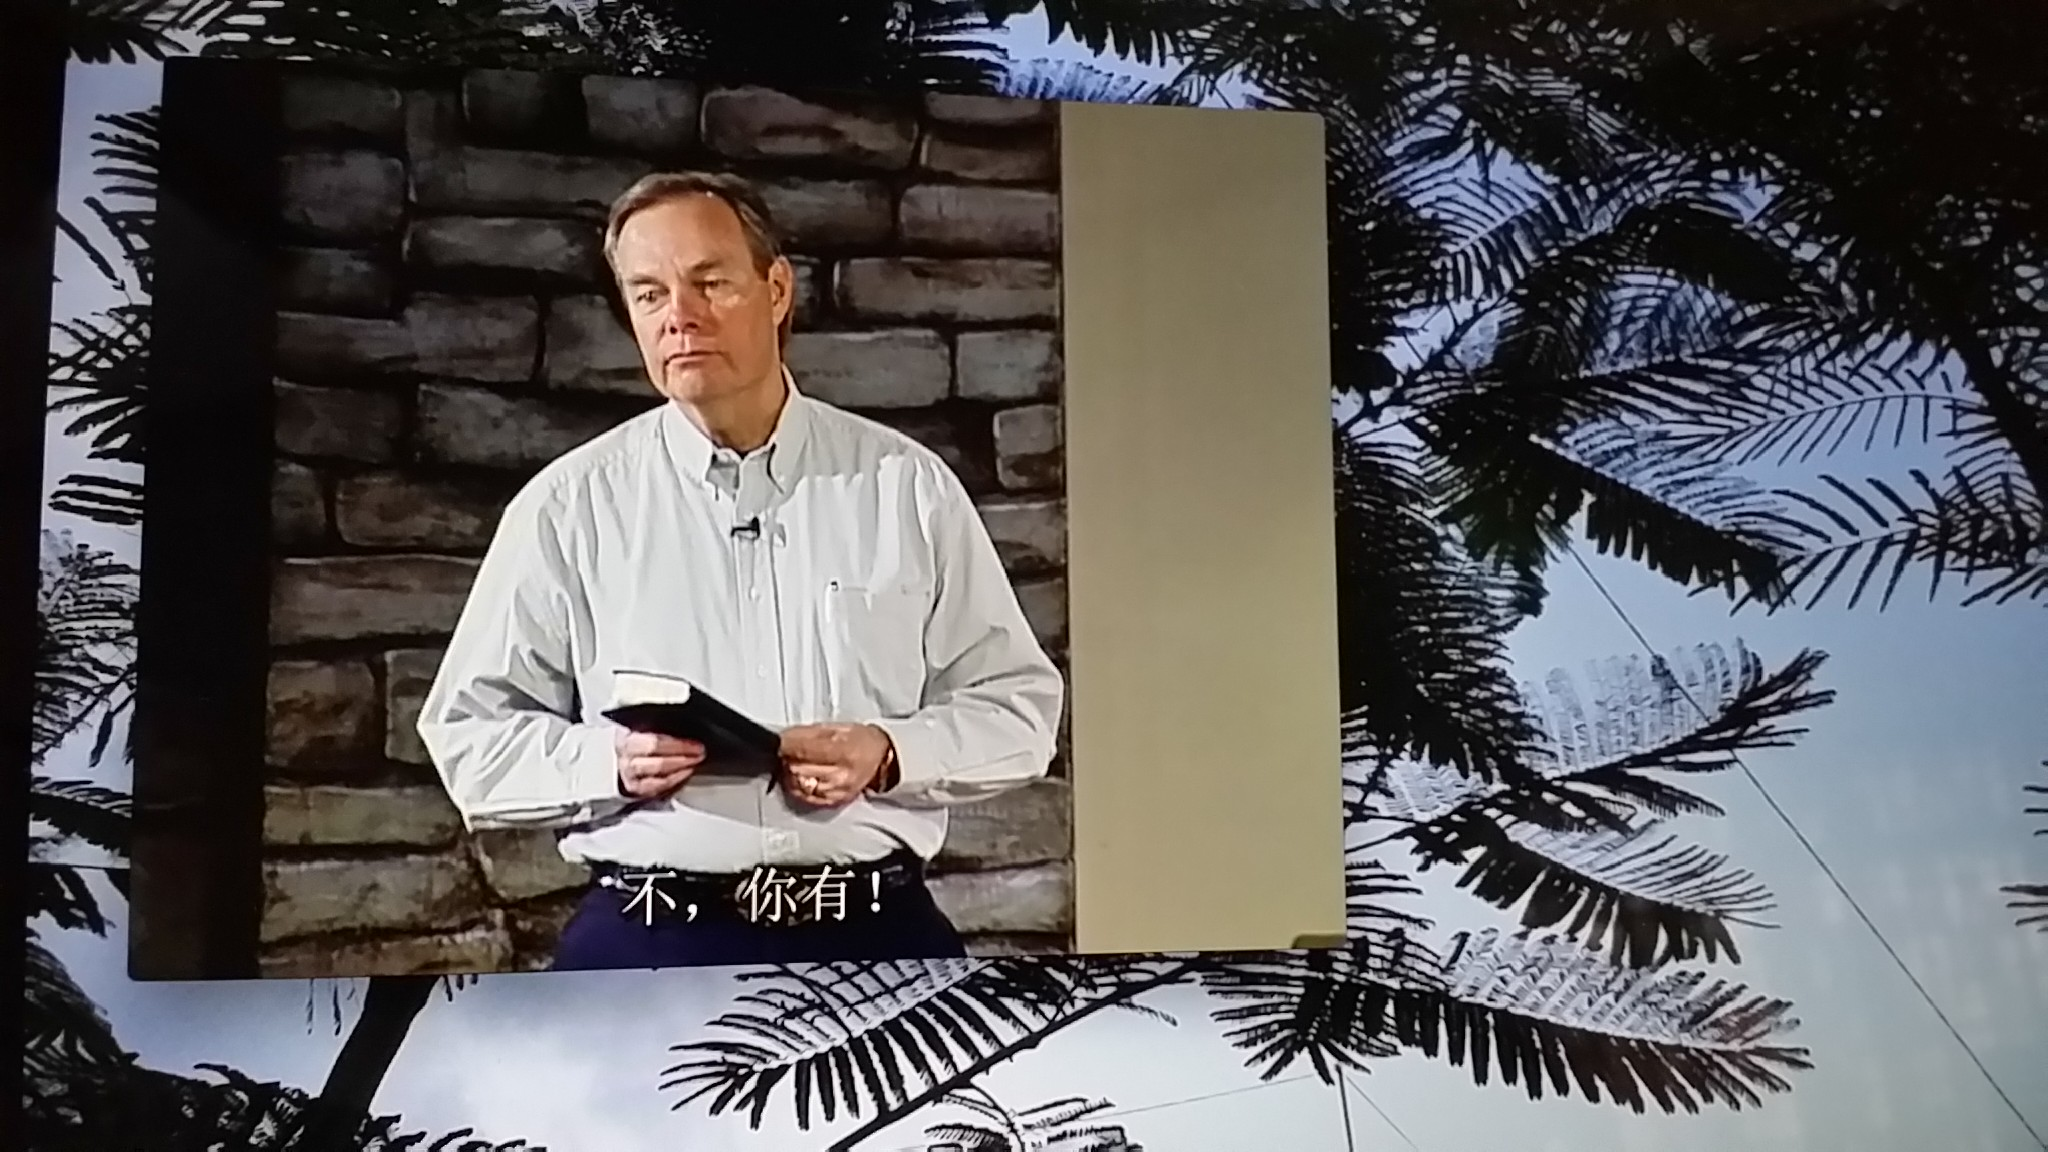 andrew-wommack-teaches